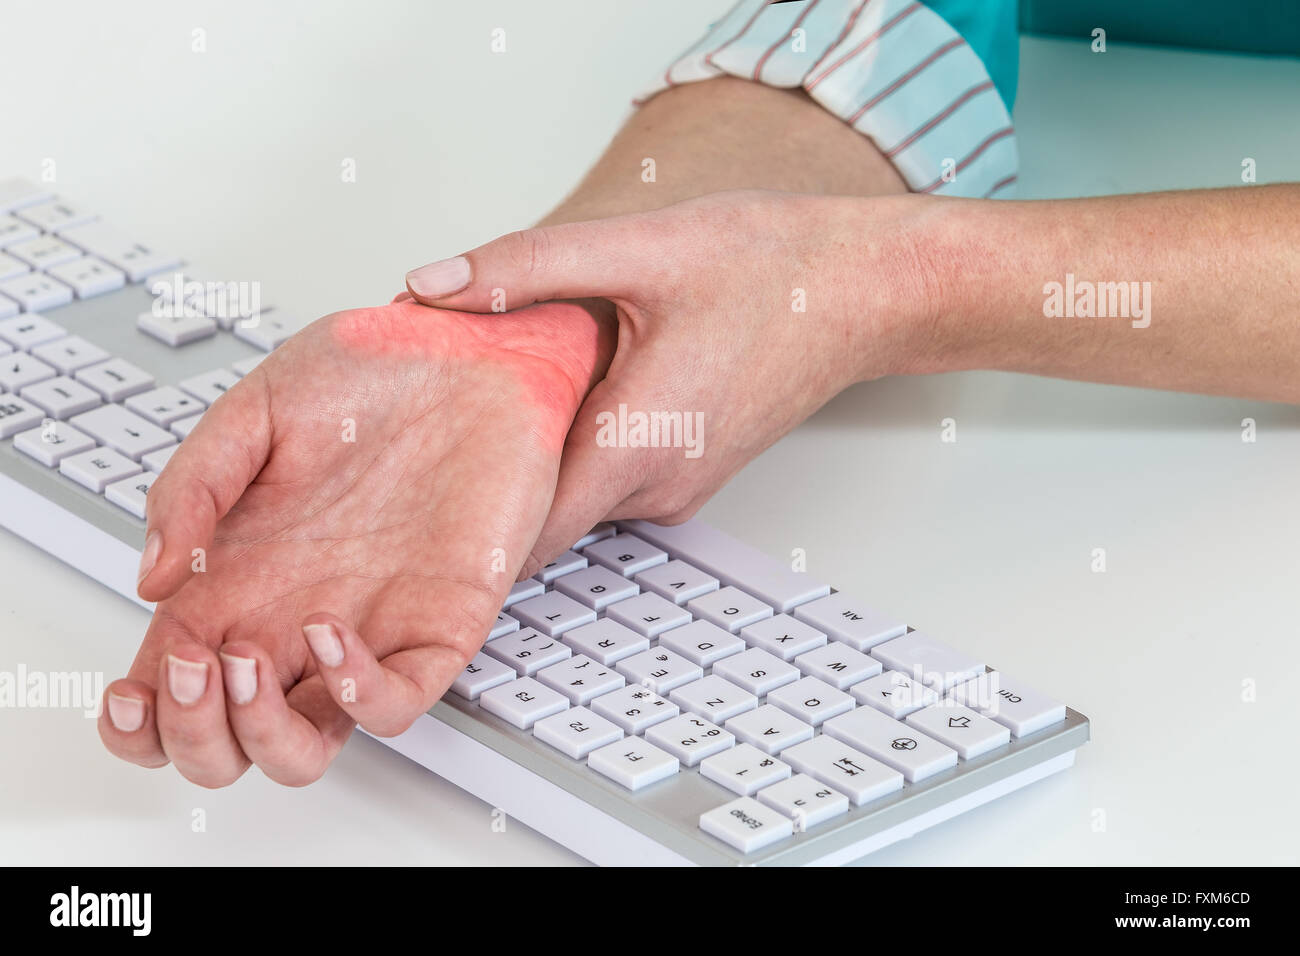 Wrist pain from working with computer,Carpal tunnel syndrome - Stock Image